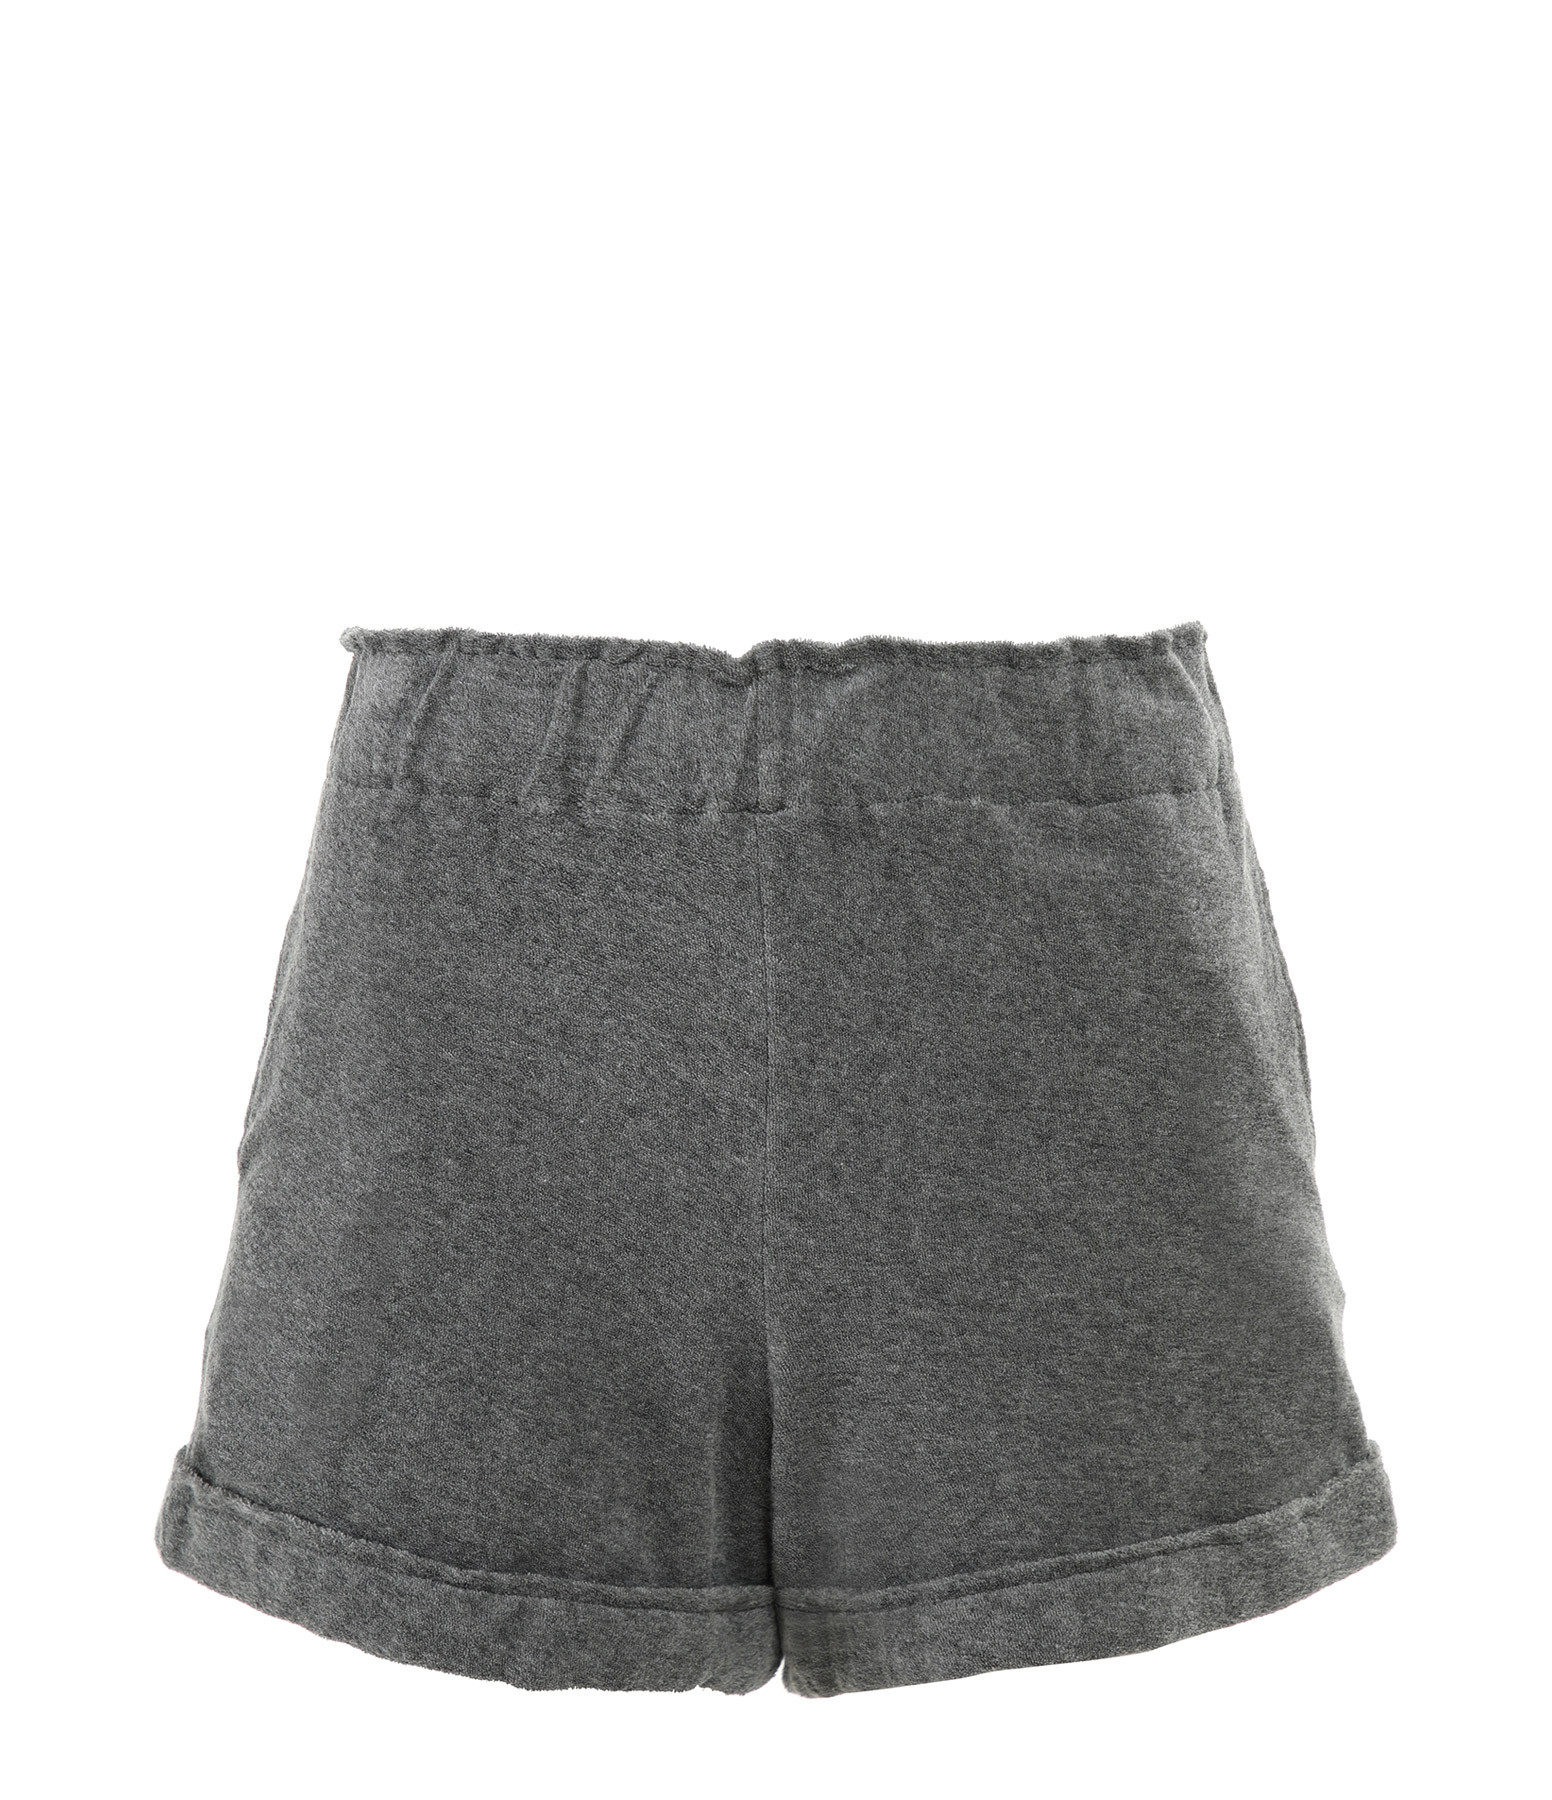 MAJESTIC FILATURES - Short Coton Gris Chiné, Collection Cindy Bruna